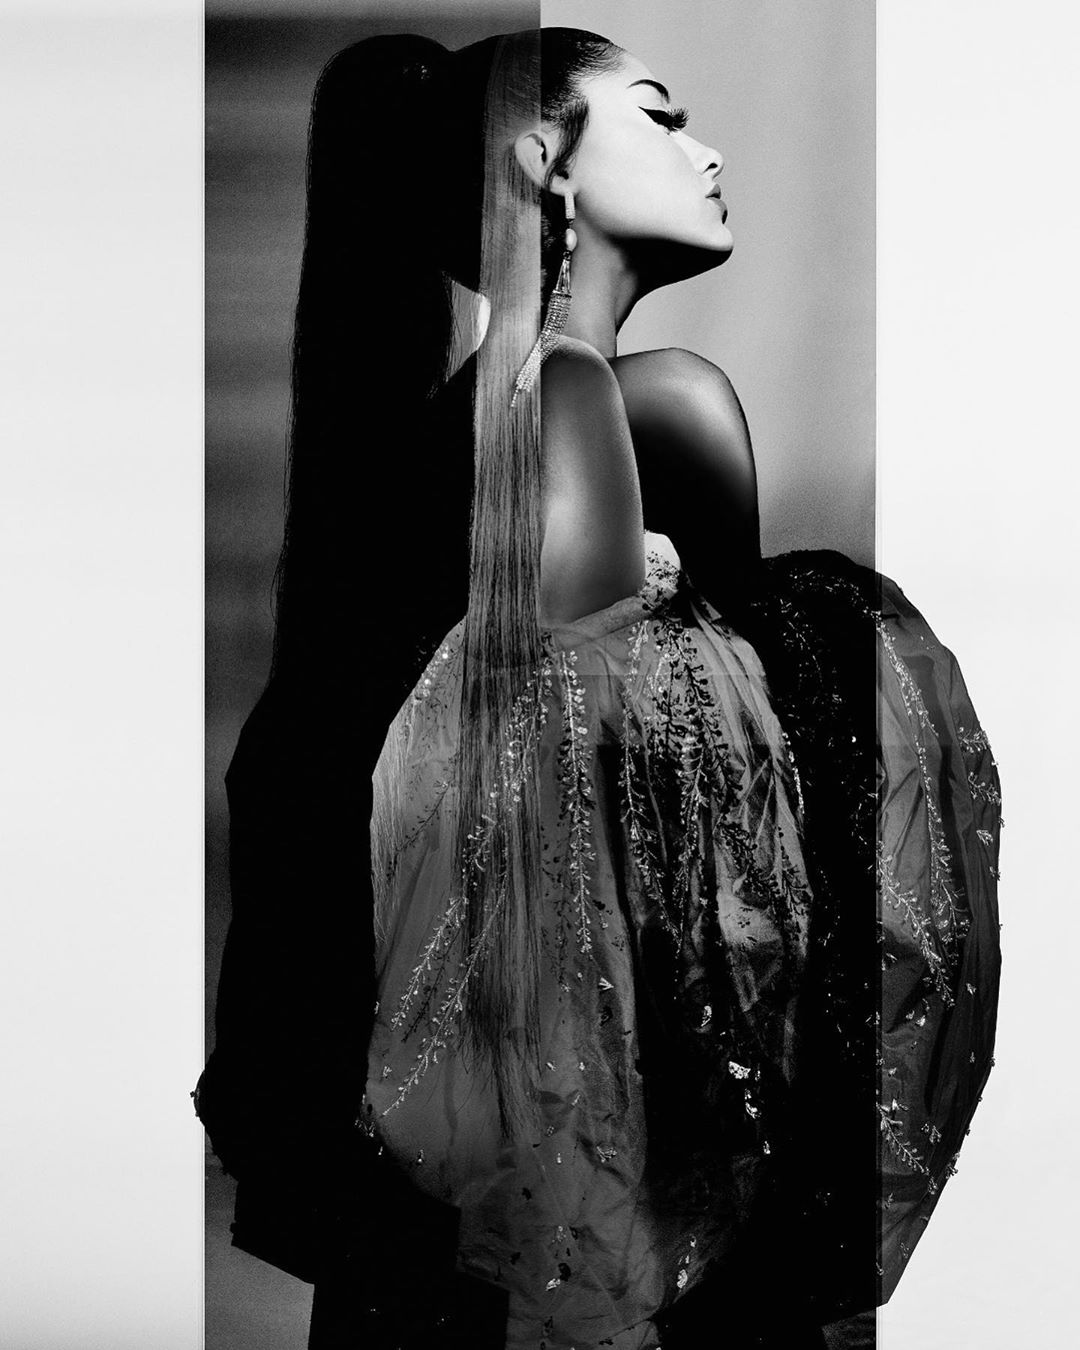 Givenchy AW19 Ariana Grande ad campaign - black and white fashion editorial